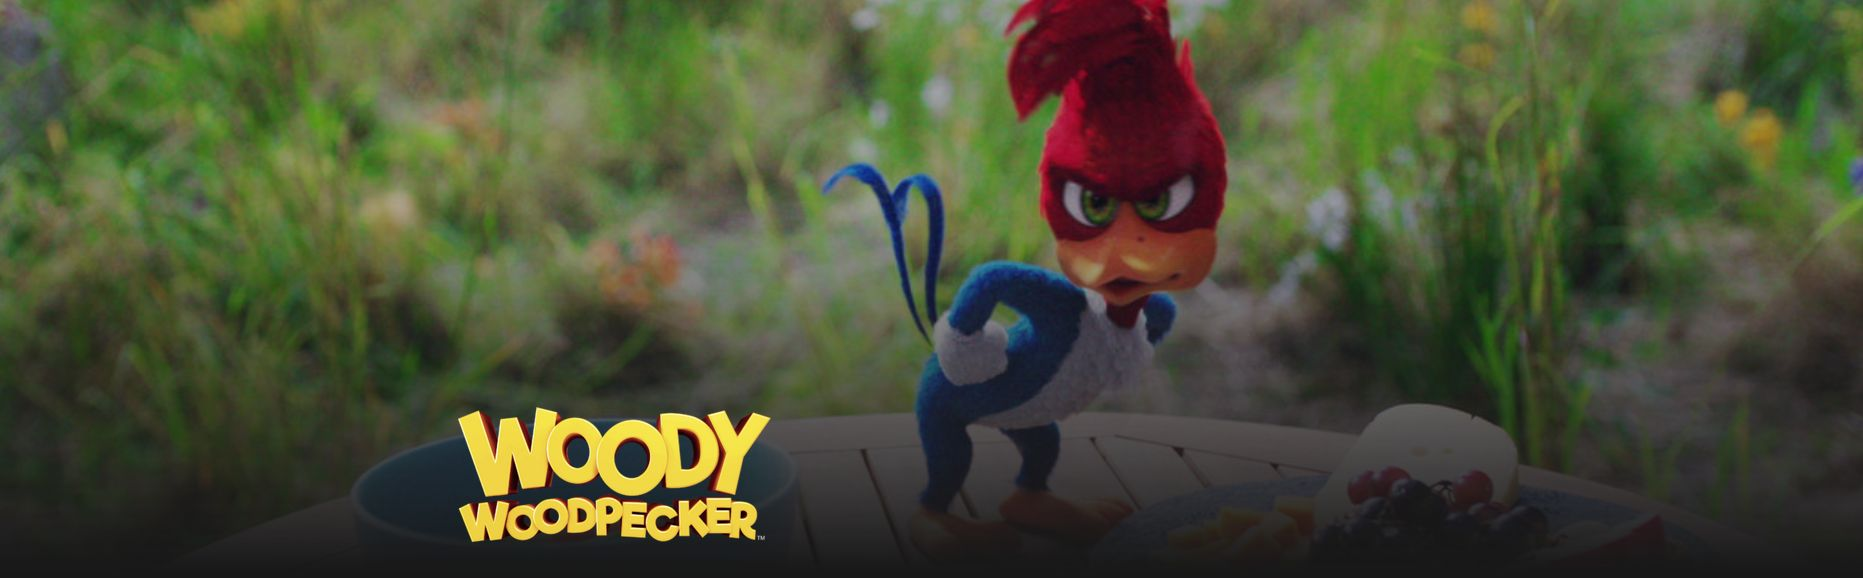 Woody Woodpecker movie 2017